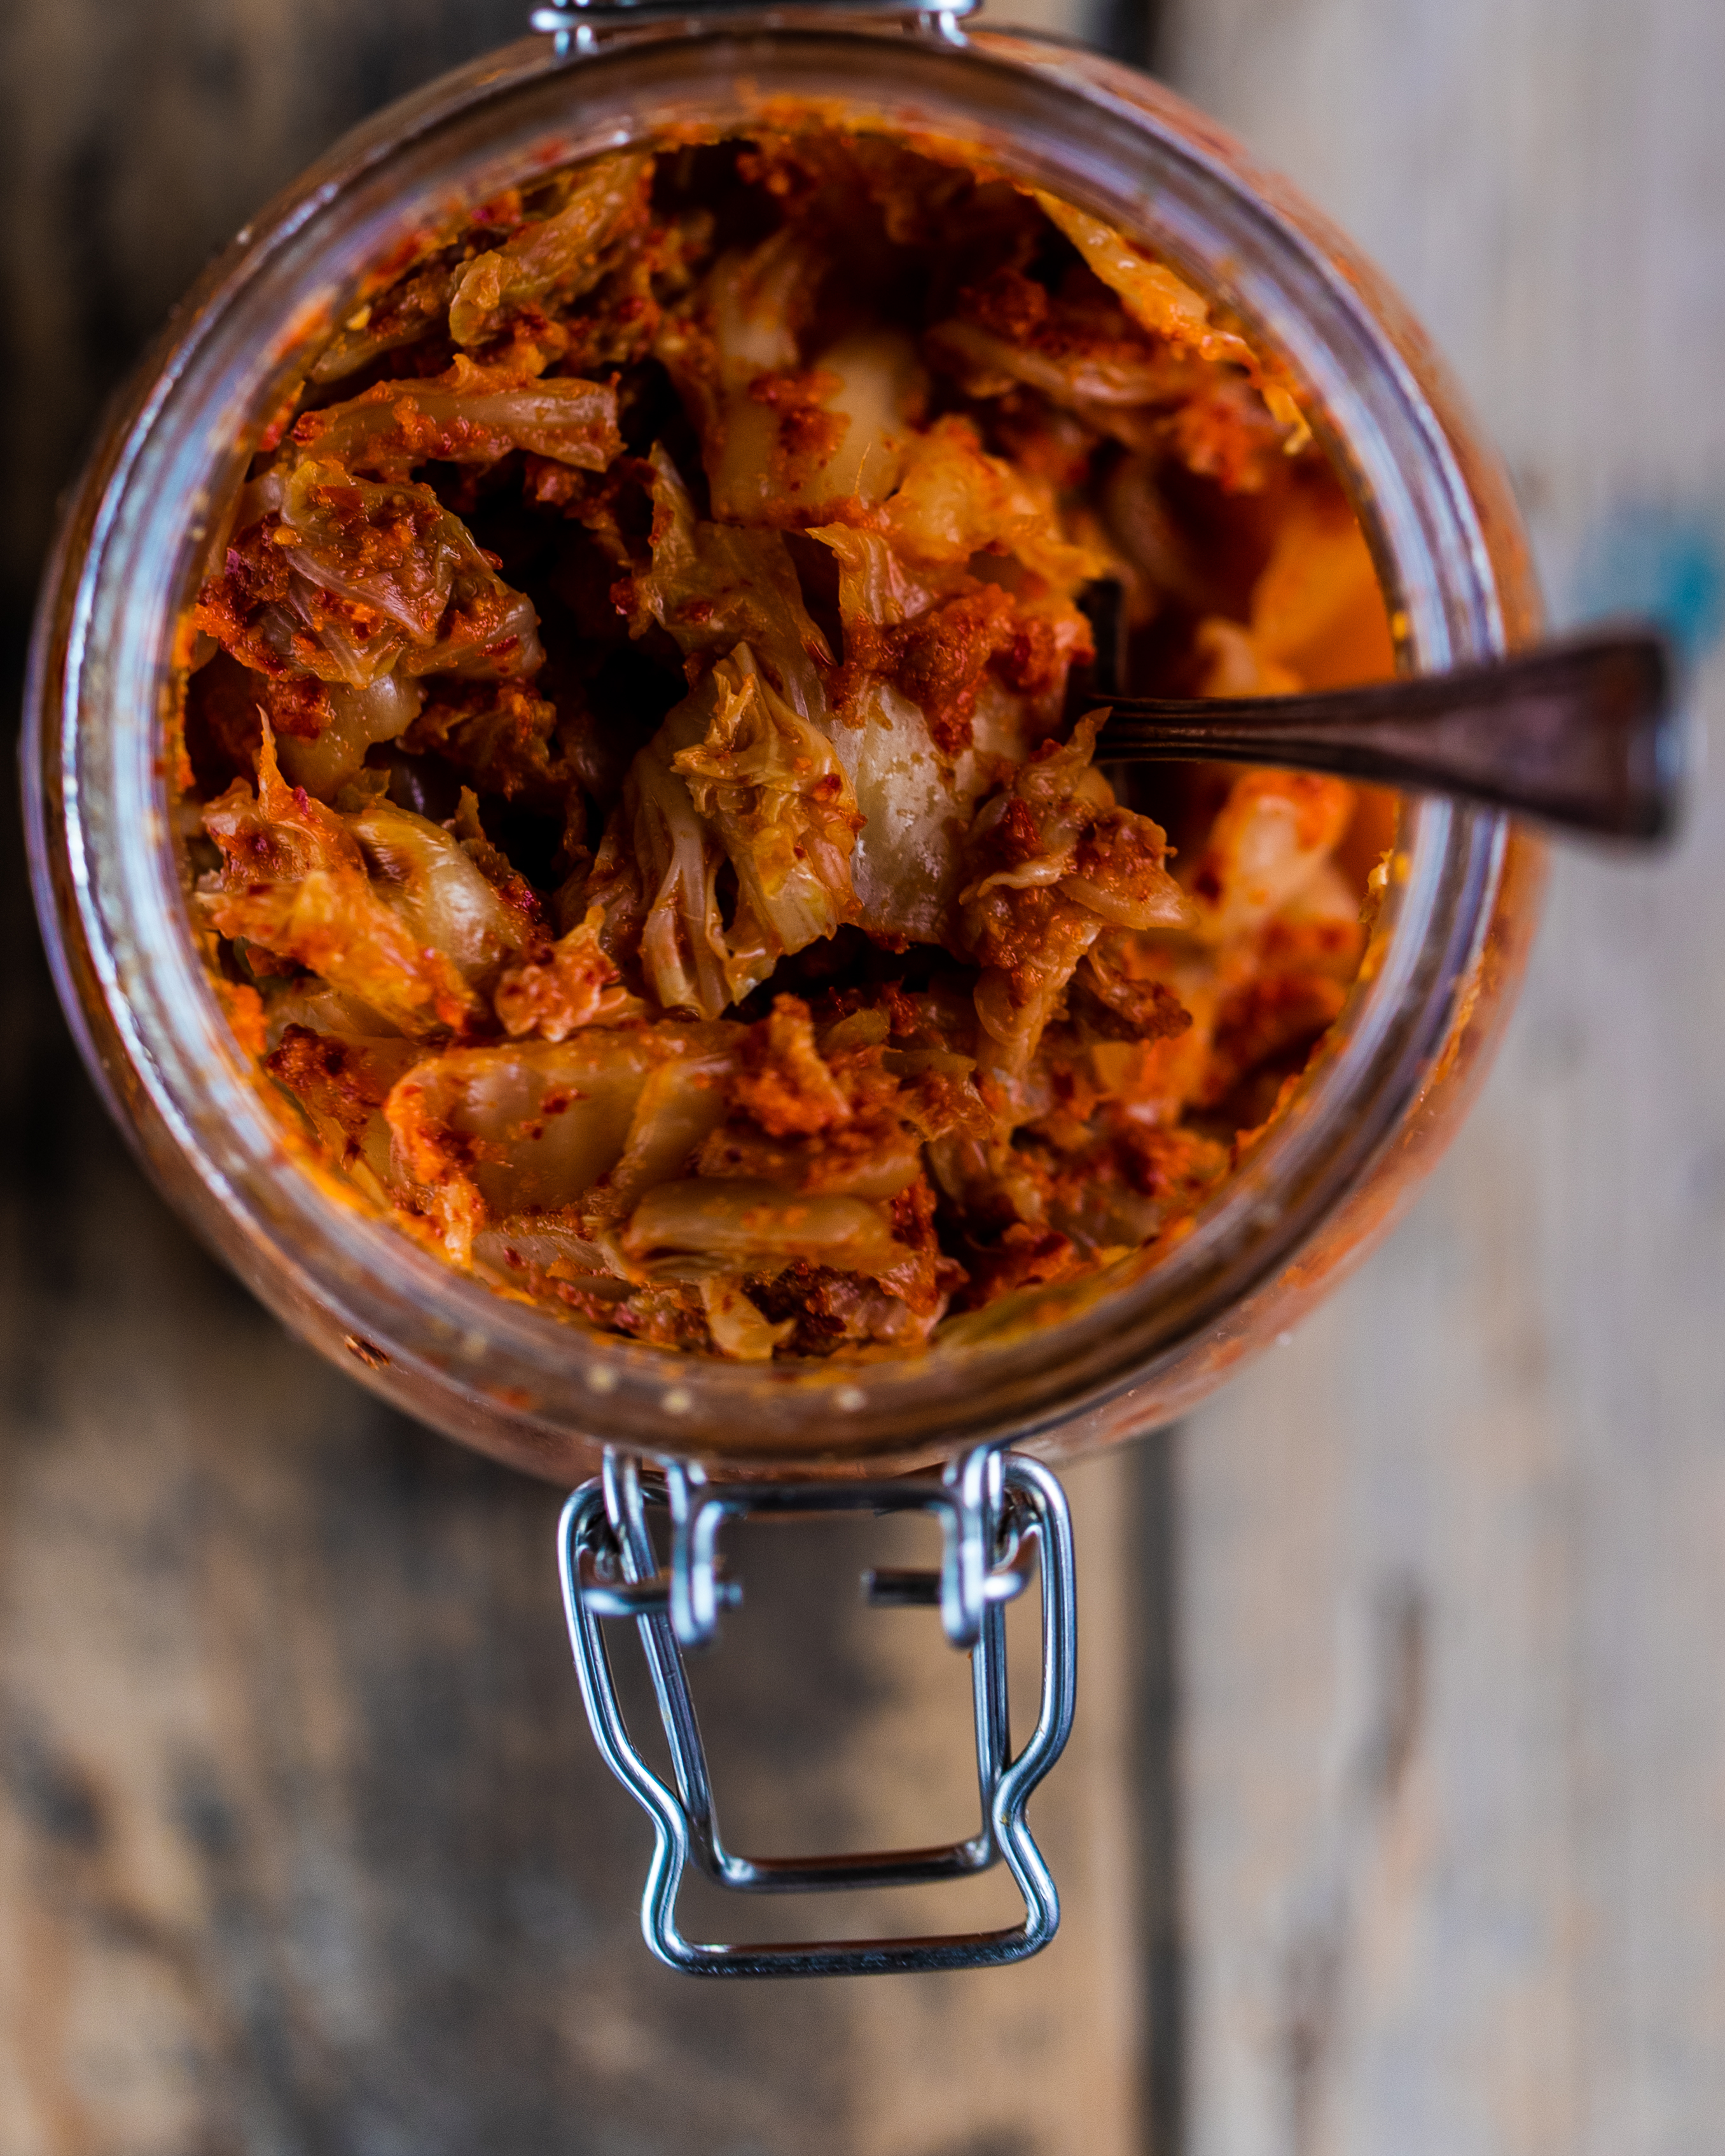 Overhead shot of vegan kimchi in a glass jar on a wooden surface